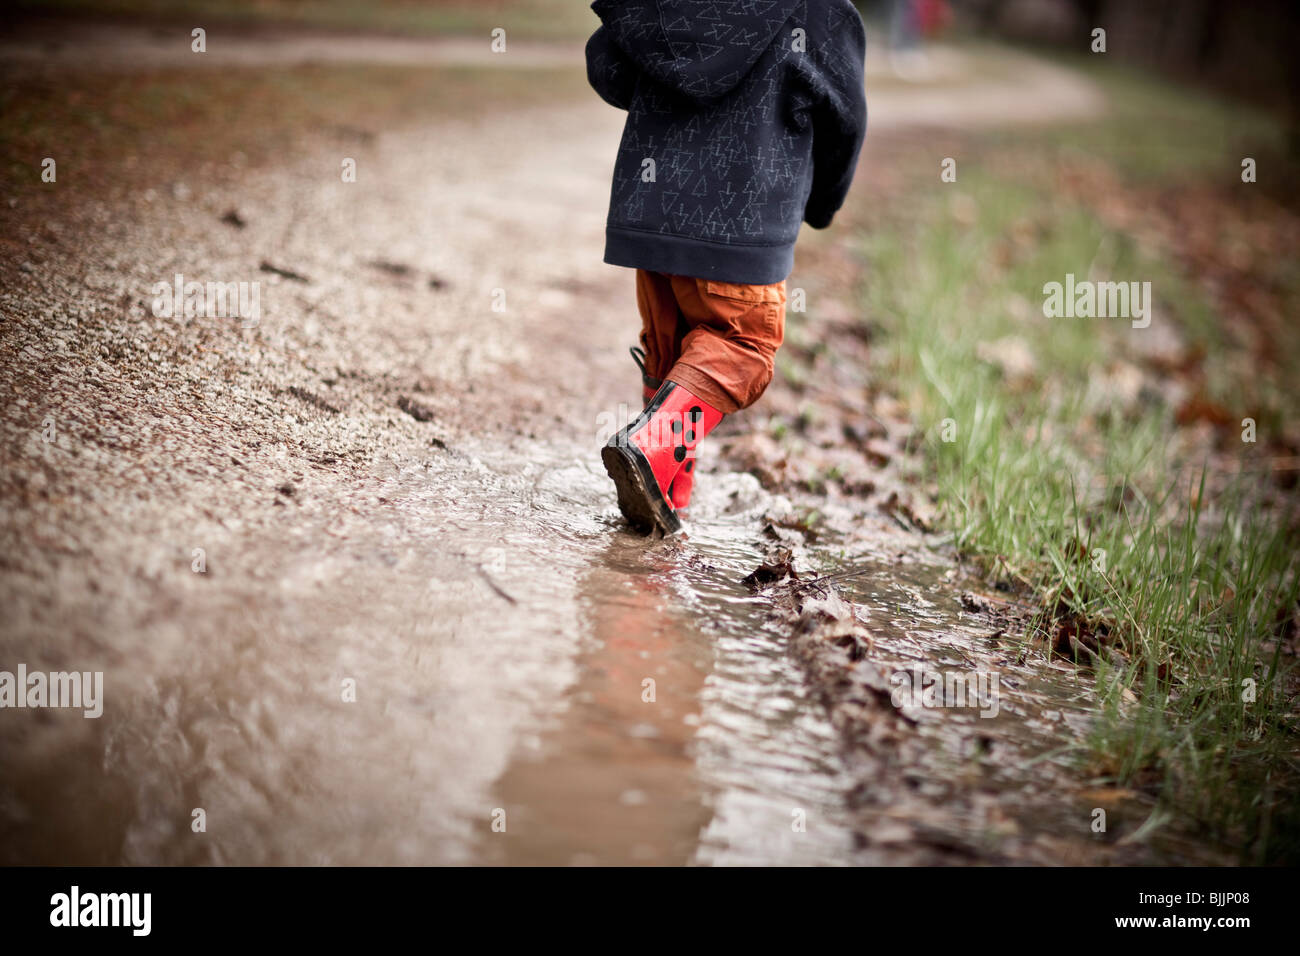 Young boy wearing rain boots walks through a puddle of water. - Stock Image